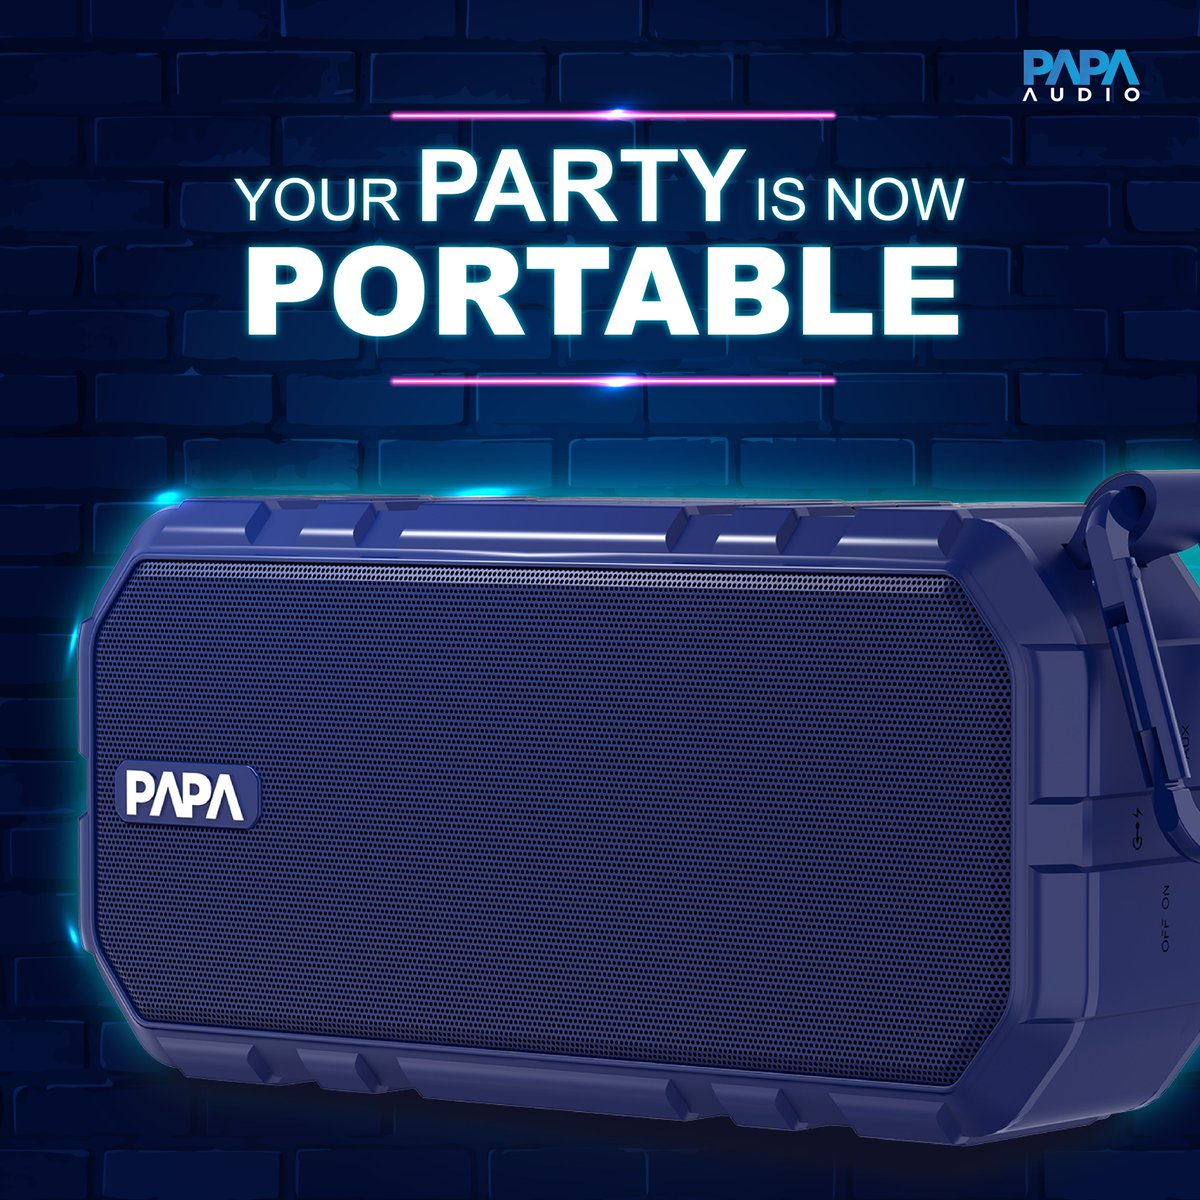 And the weekend is here Switch off your screens, and put some music on! Get your portable speaker now - http://bit.ly/2Jo56Uh   #PapaAudio #PortableSpeakers #BluetoothSpeakers #WirelessSpeakers #Weekend #FridayFeeling #FridayVibespic.twitter.com/NXcYy820mr